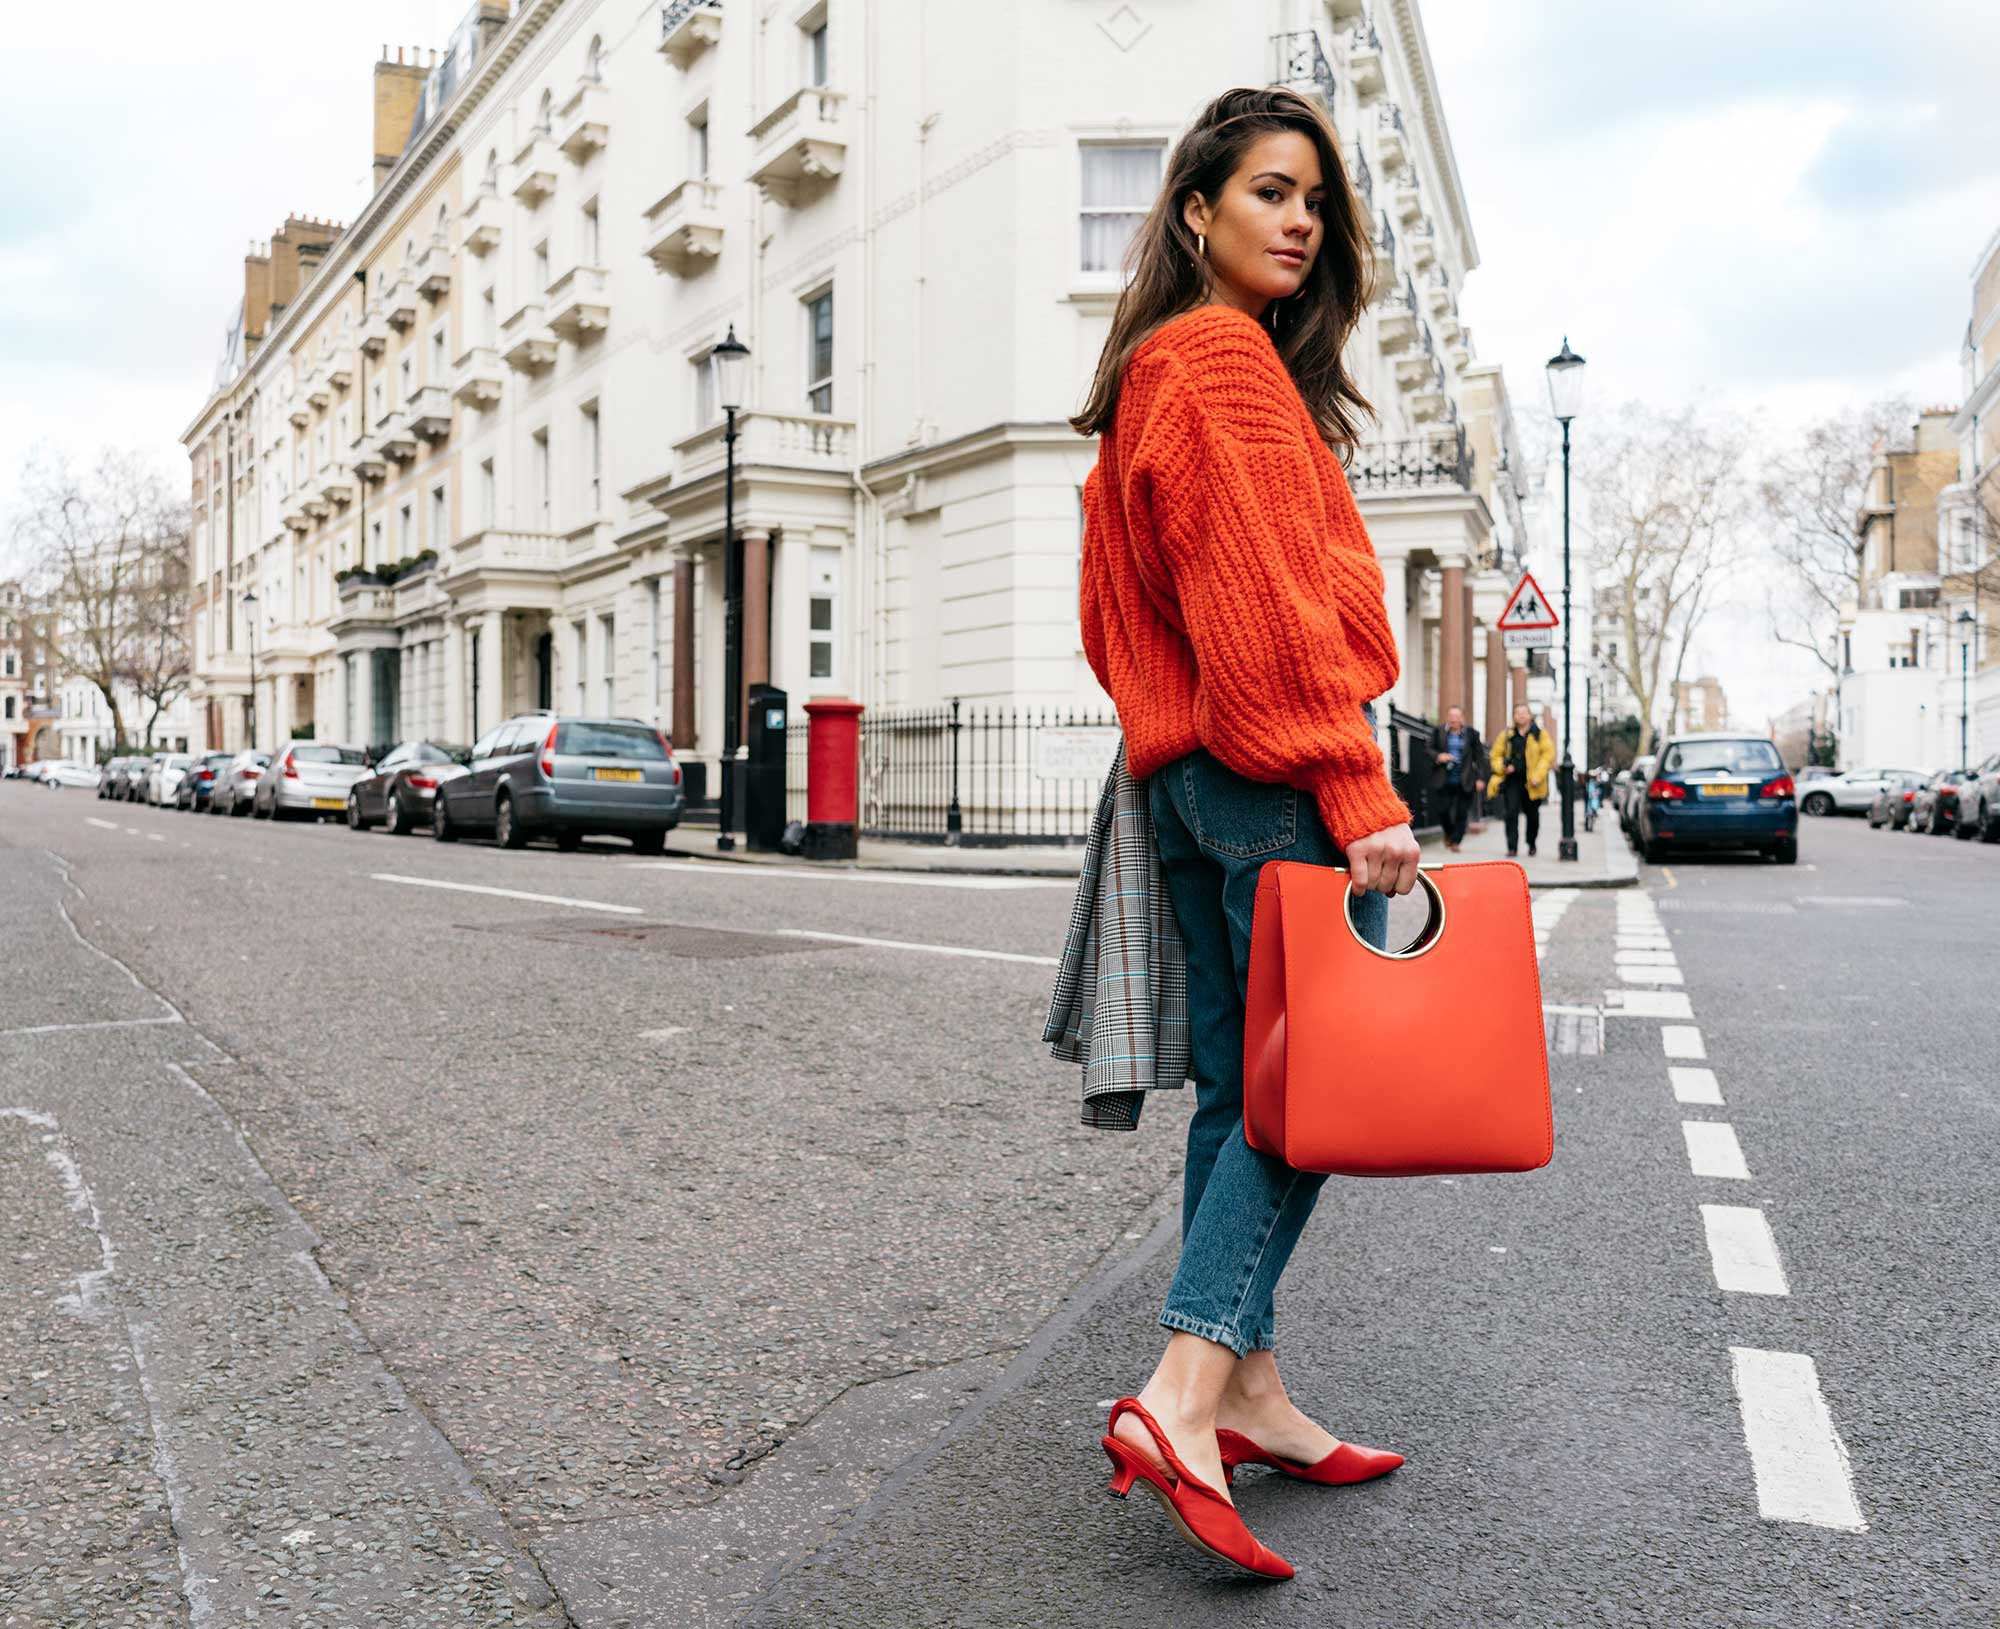 Lightweight-Check-Coat,-Salvatore-Ferragamo-Red-Leather-Tote,--Mom-jeans,-London-Fall-Outfit-Red-Accessories-16.jpg